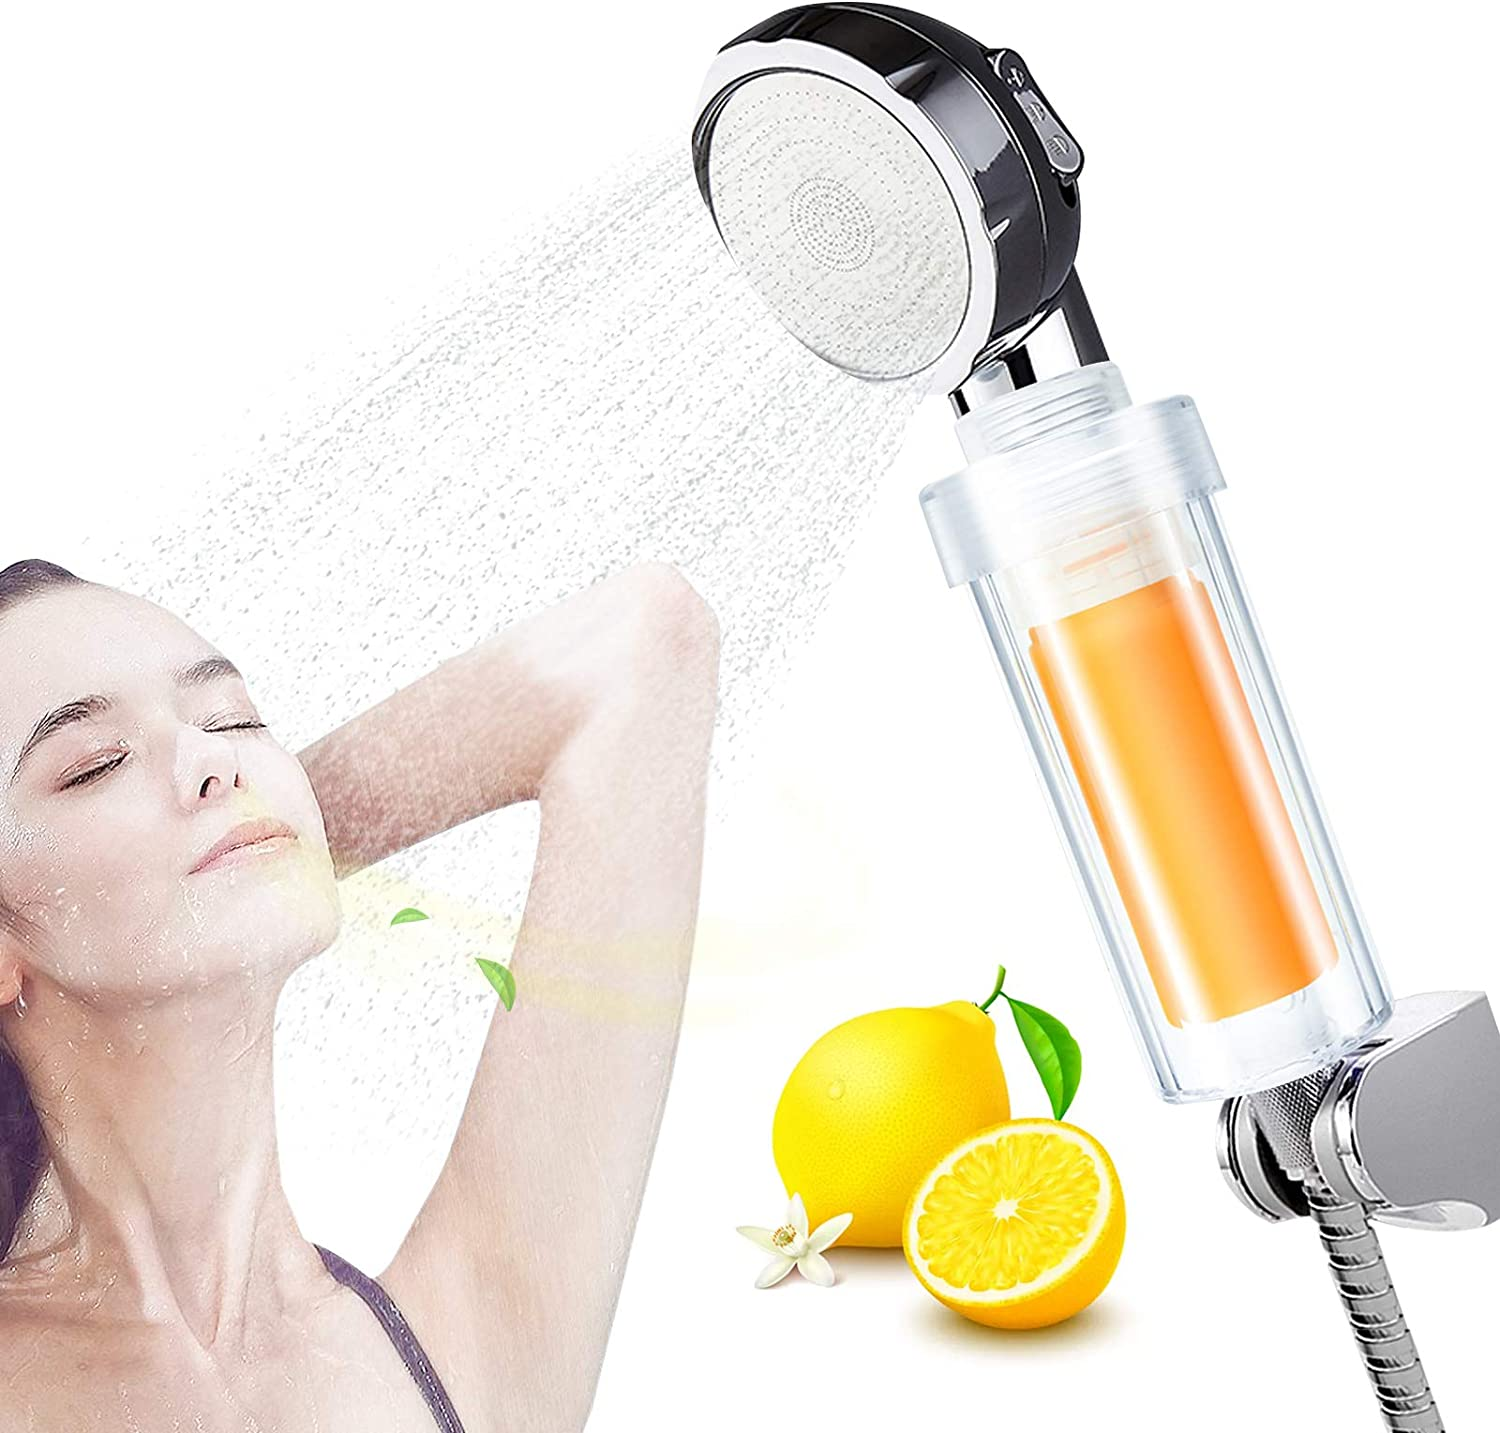 Vitamin C Filter Shower Head, Filtered Shower Head for Hard Water and Chlorine,Vitamin Water Softener,Universal Shower System,Helps Dry Skin & Dry Hair,Gift idea For Her/Him,Wife,Girlfriend